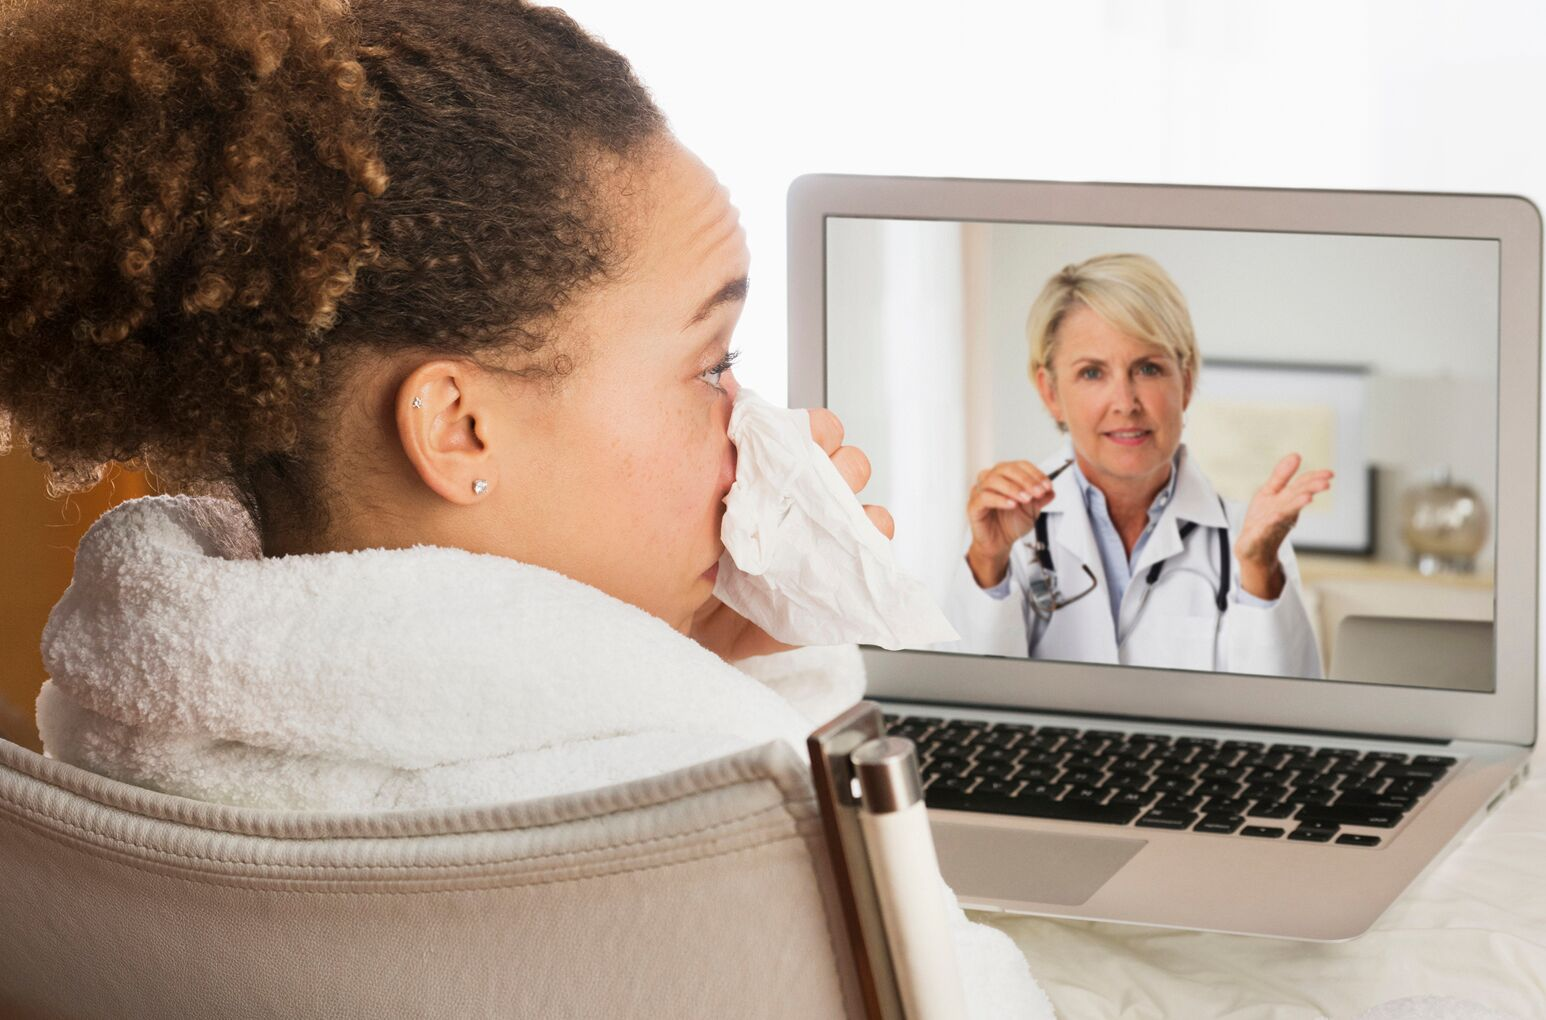 A sick woman talks to a doctor through a telehealth services device.